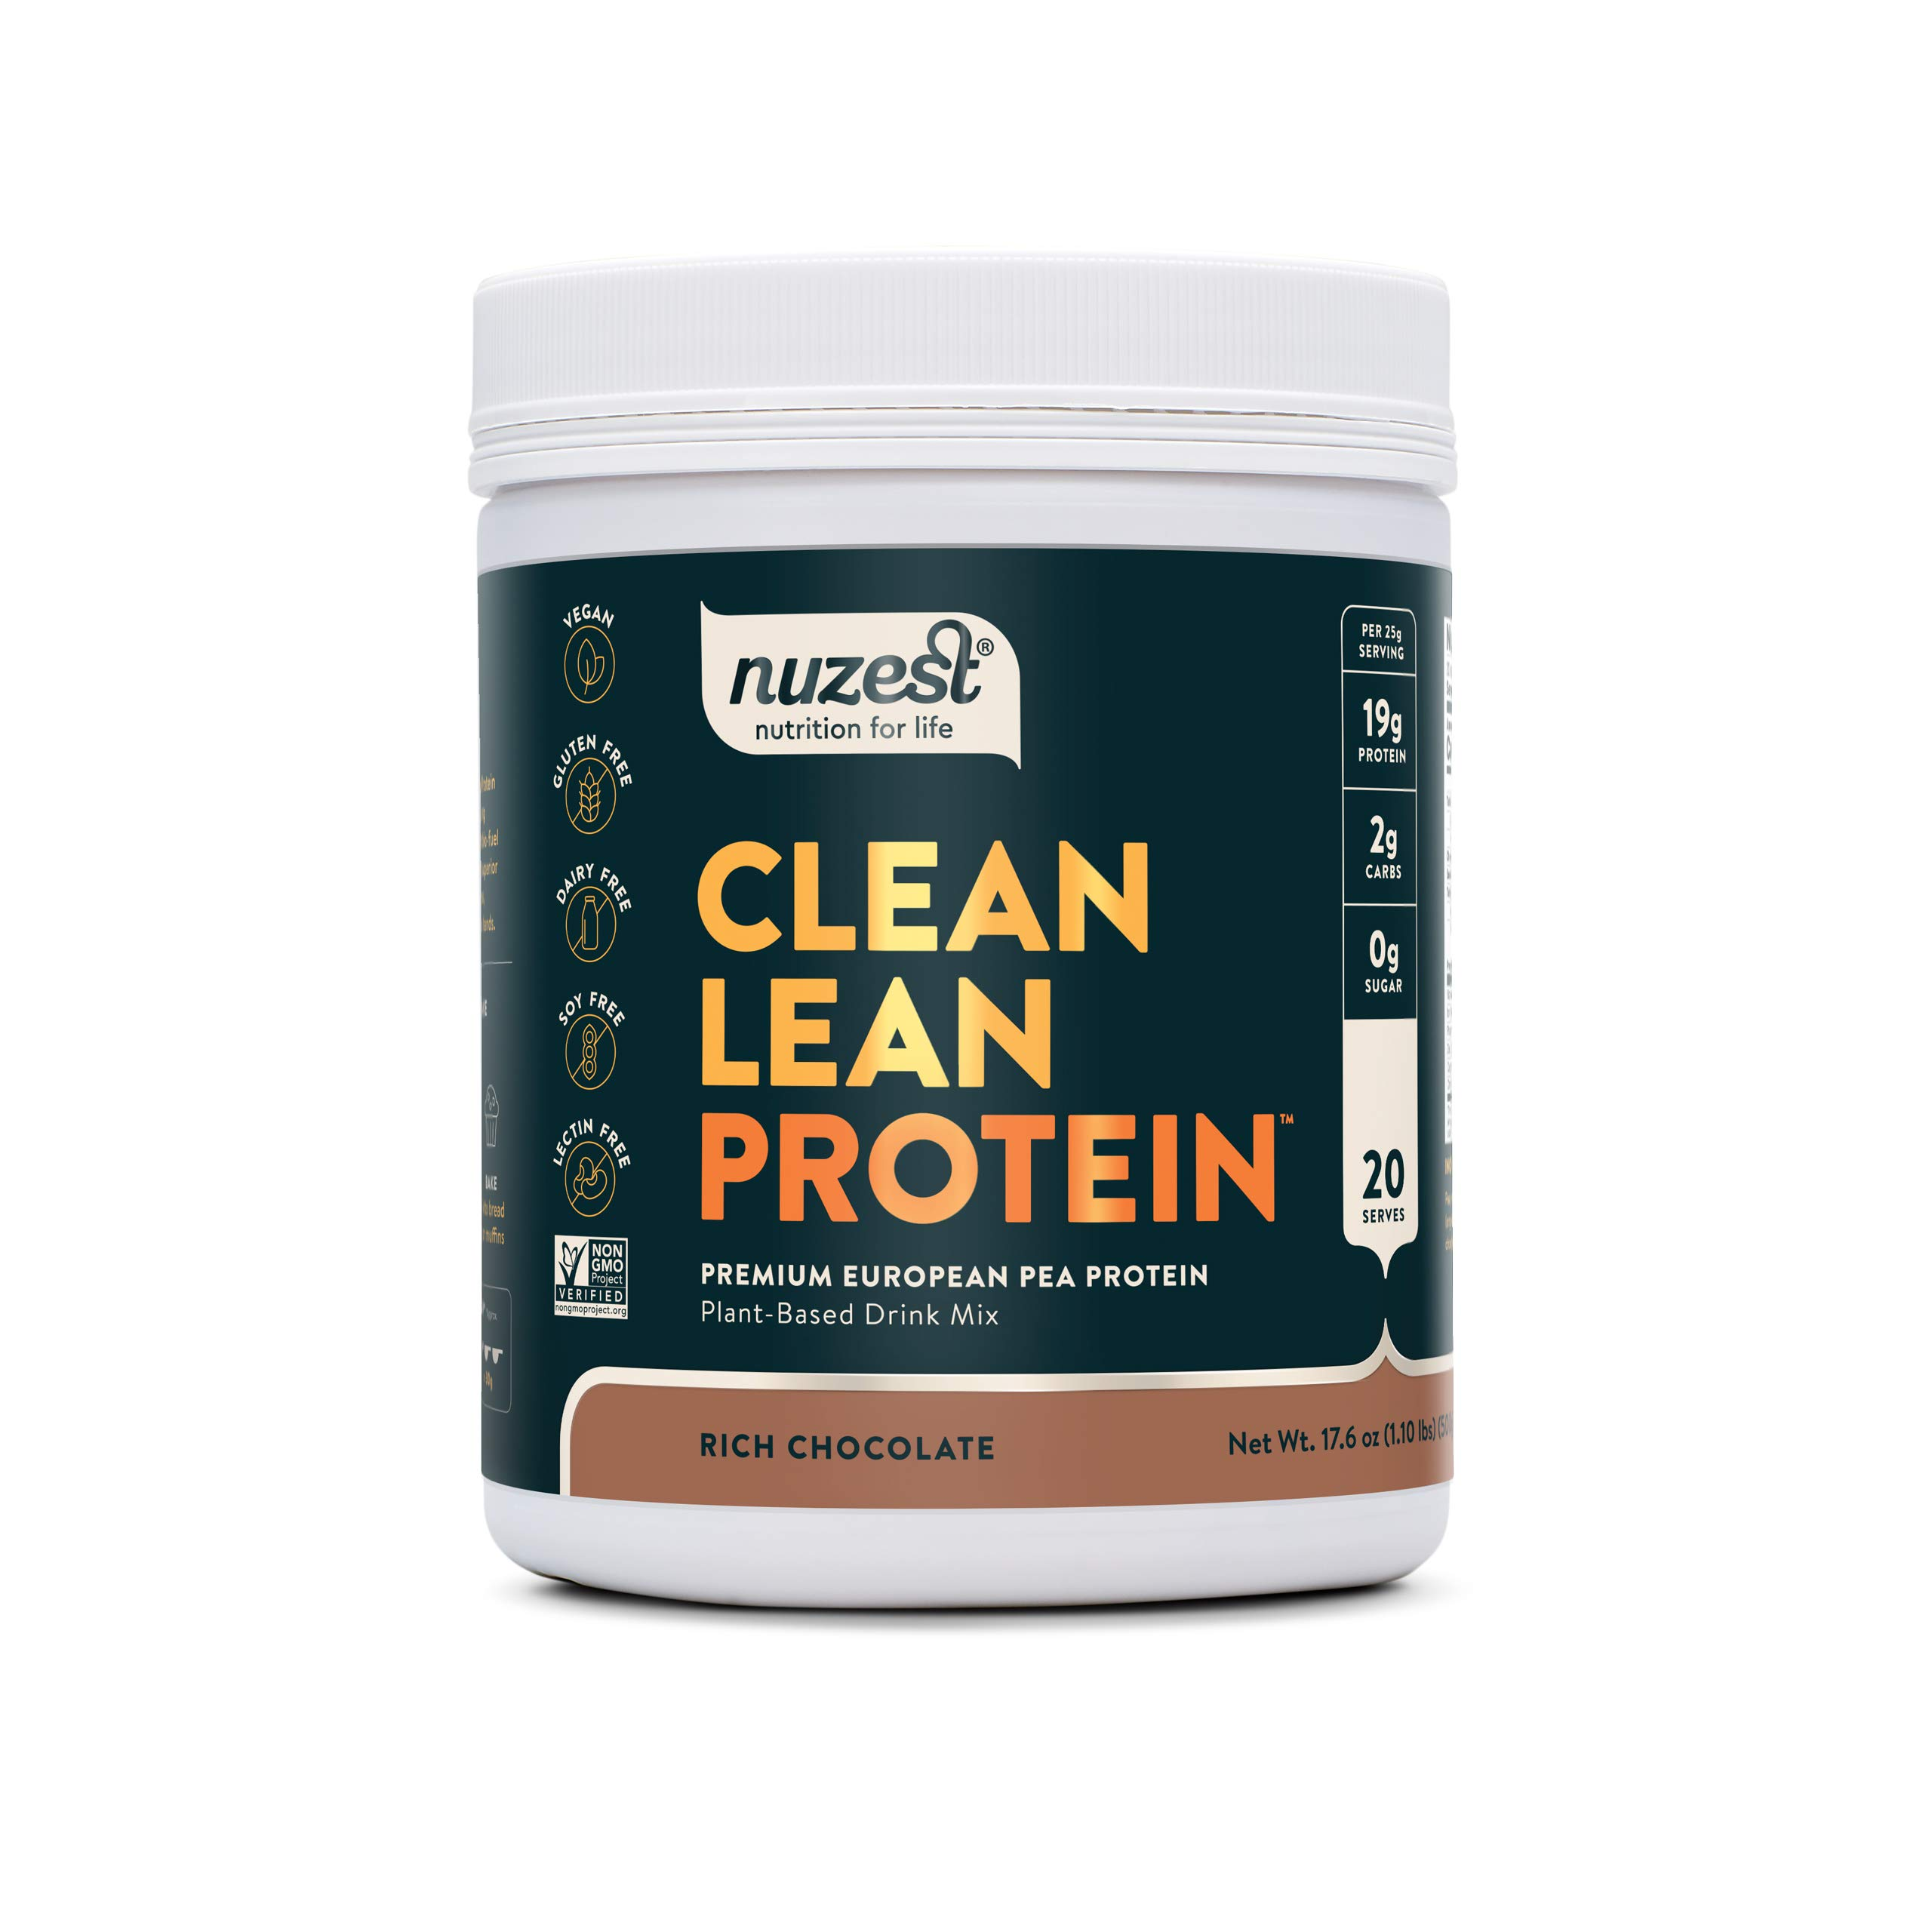 Nuzest Clean Lean Protein - Premium Vegan Protein Powder, Plant Based Protein Powder, Chocolate Protein Powder, Dairy Free, Gluten Free, GMO Free, Naturally Sweetened, Chocolate Protein Powder, 20 Servings, 1.1 lb